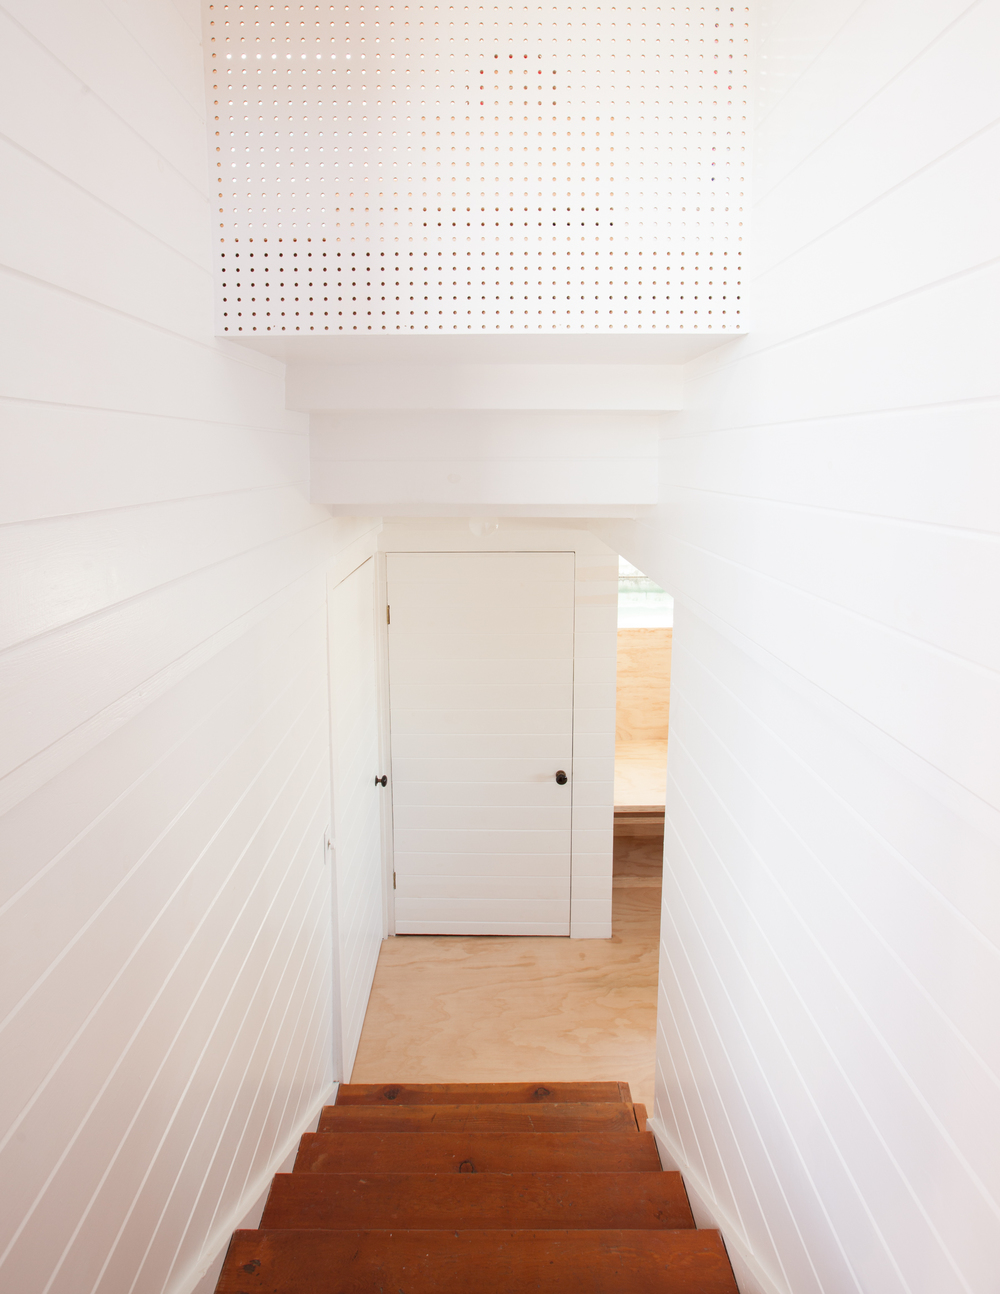 pegboard and stairway // Houseboat by Sky Lanigan for Medium Plenty